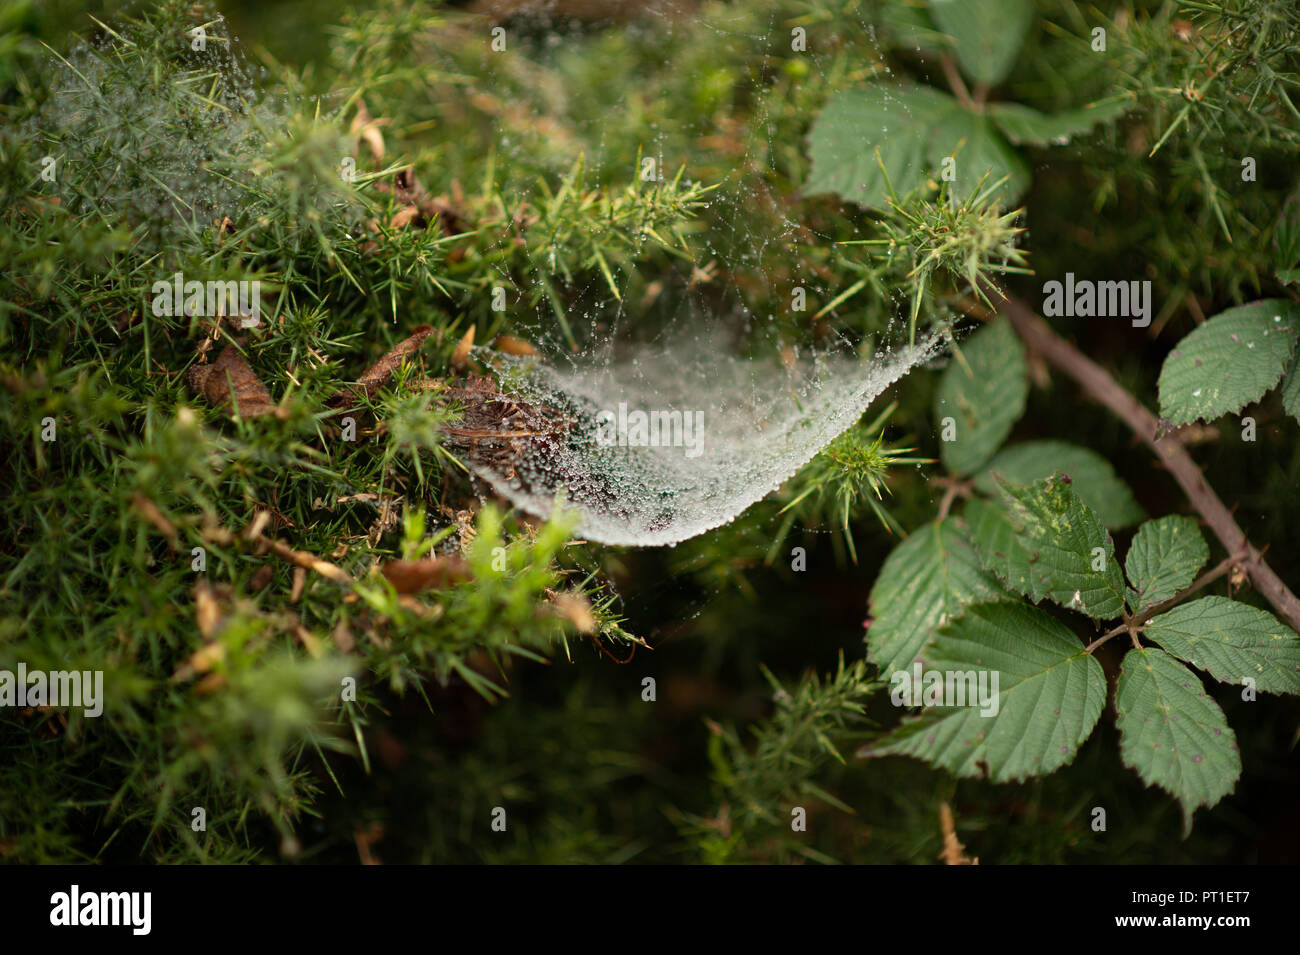 white spiders webs laden with heavy water droplets of recent rain link mini trampolines ready to trap the unwary prey suspended in prickly gorse. - Stock Image